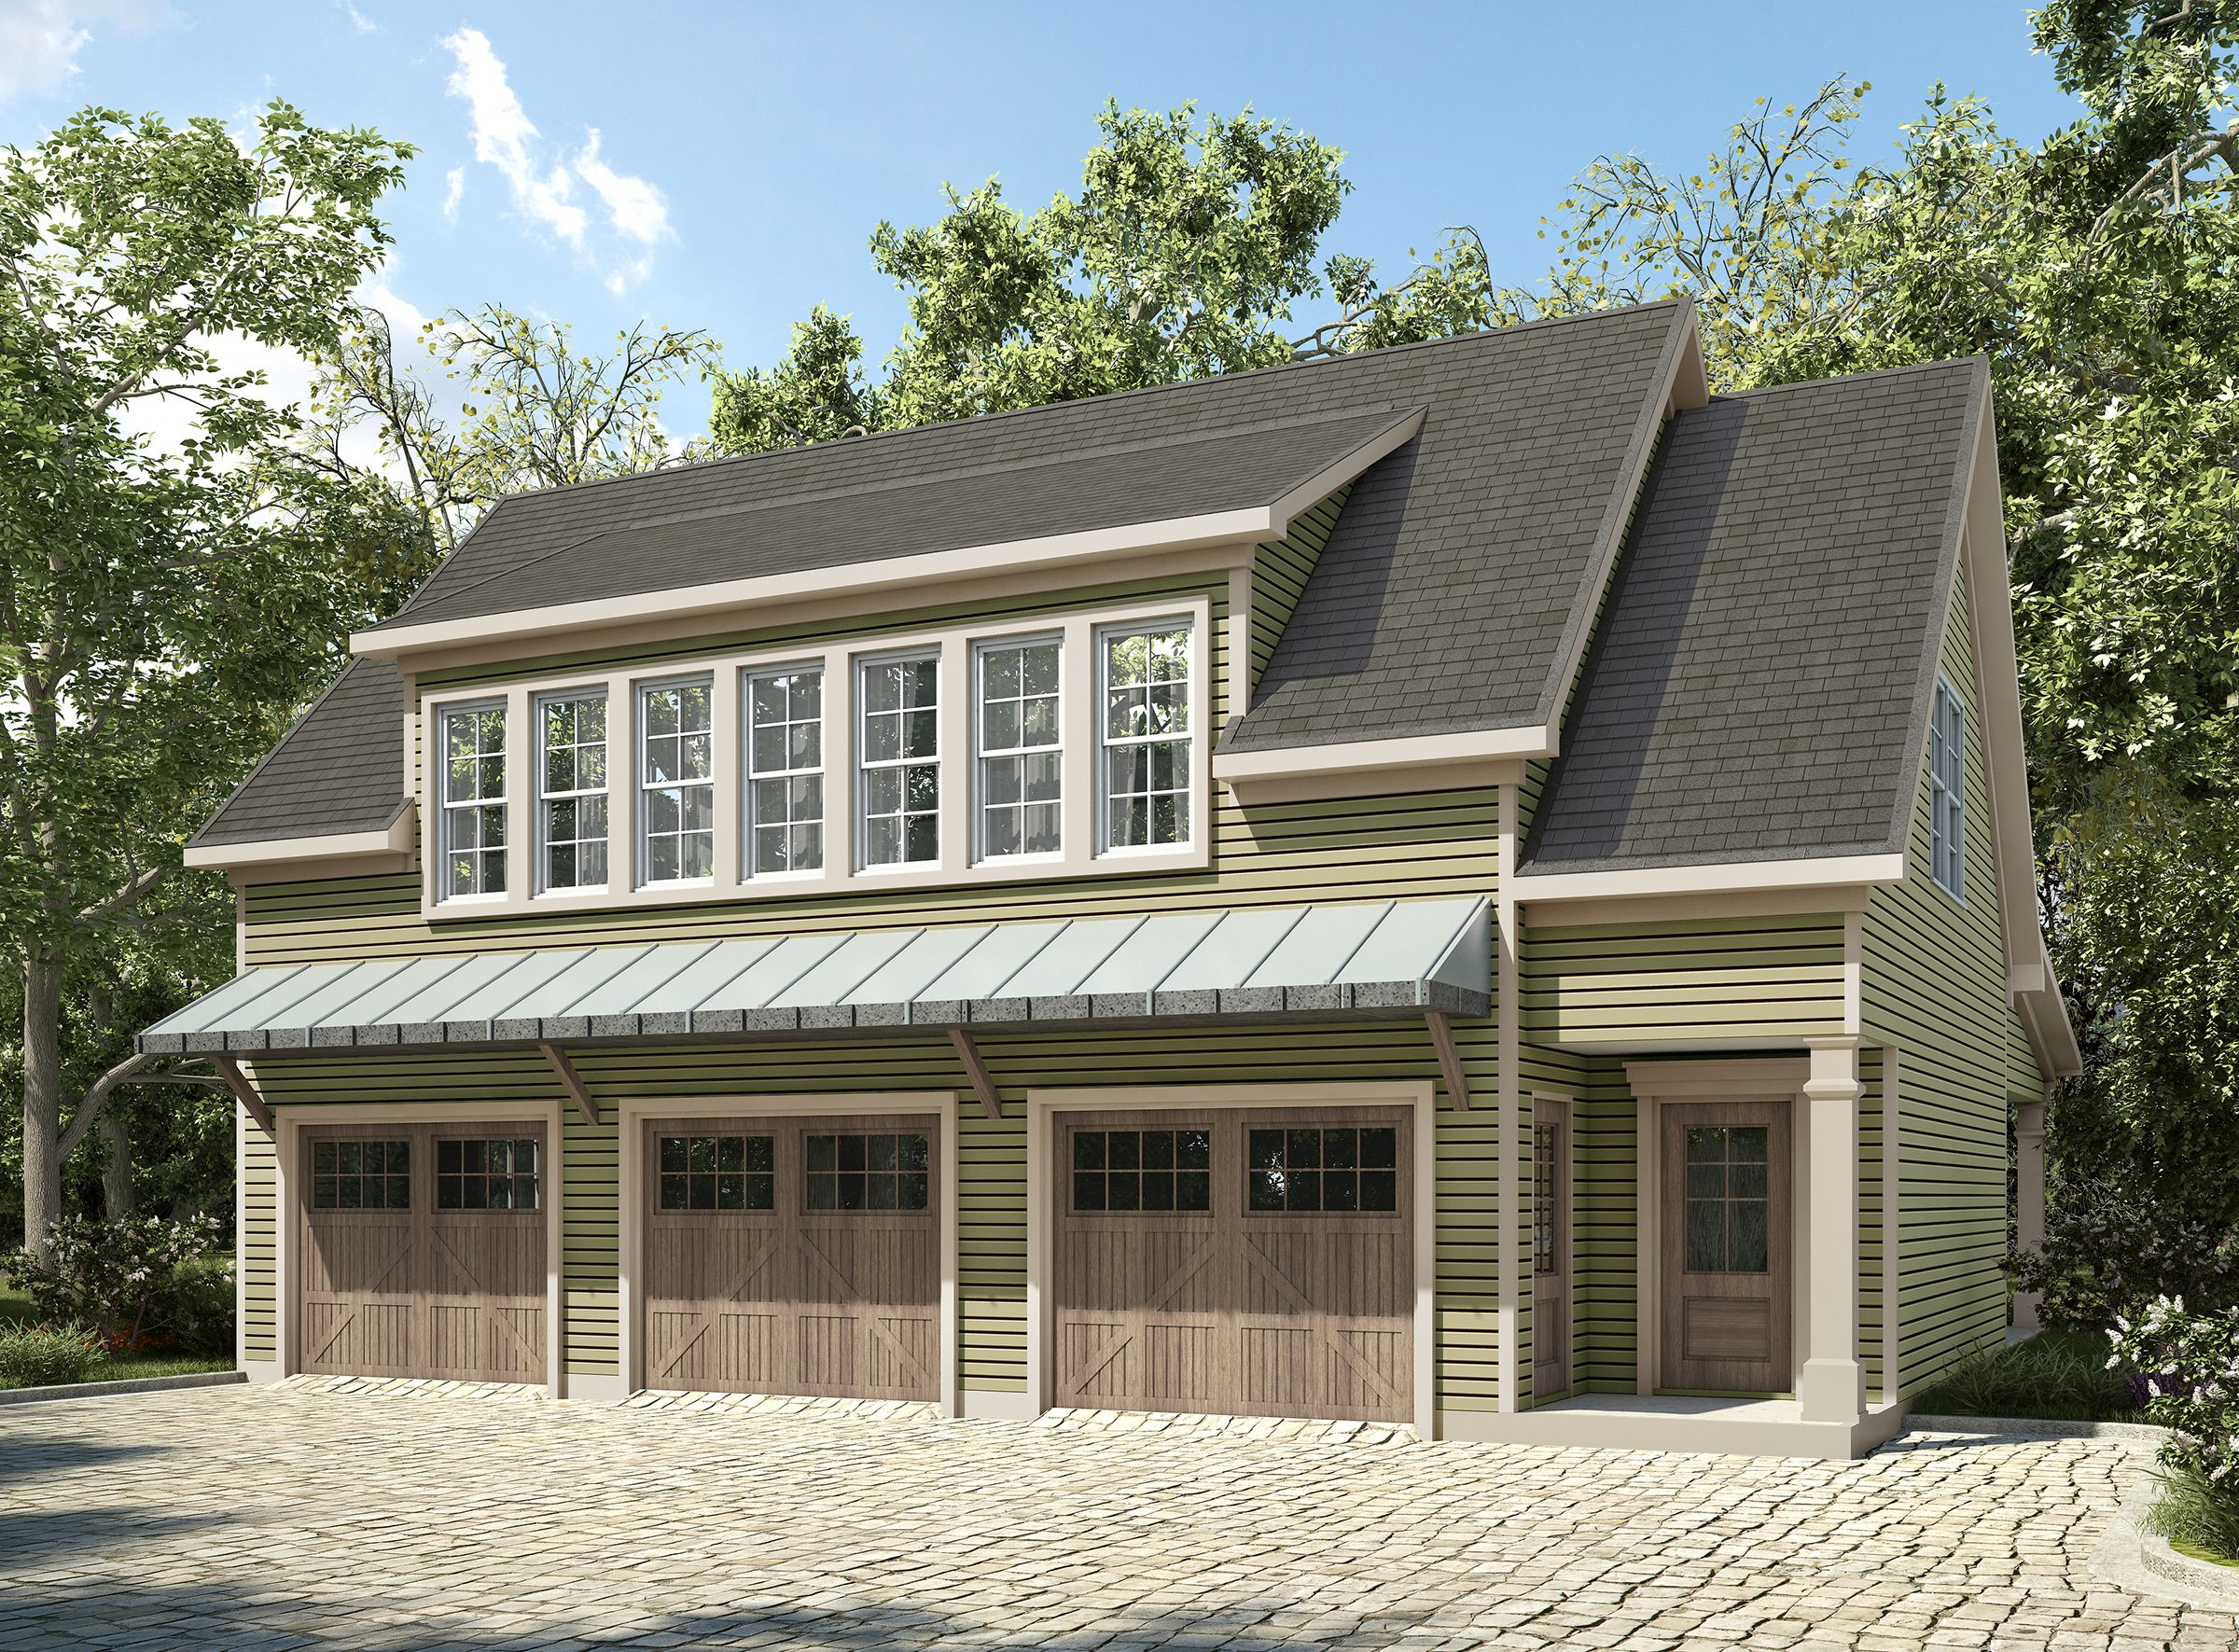 Plan 36057dk 3 bay carriage house plan with shed roof in for Cupola for garage